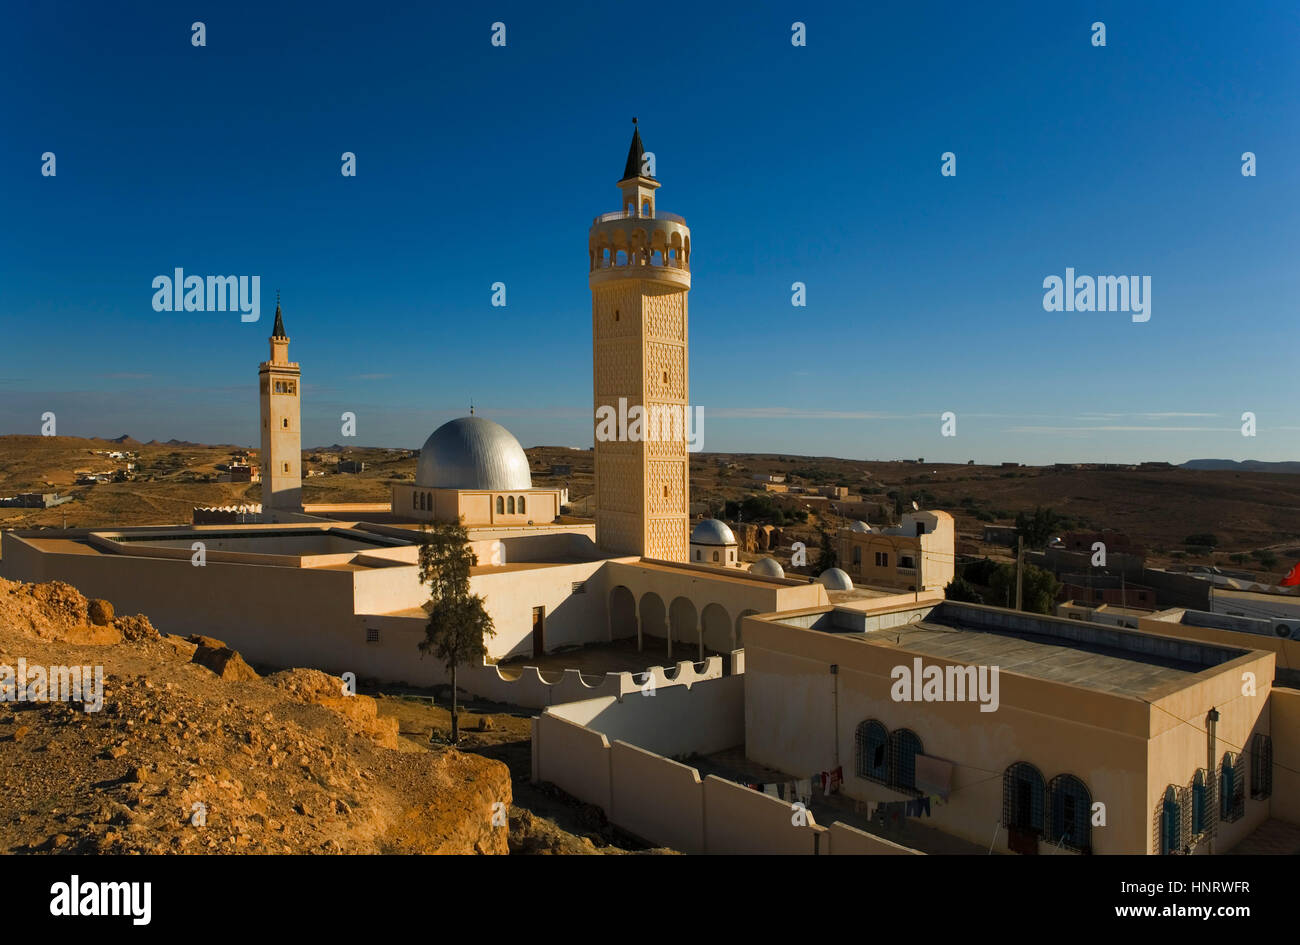 Tunisie.ksar haddada mosquée. Photo Stock